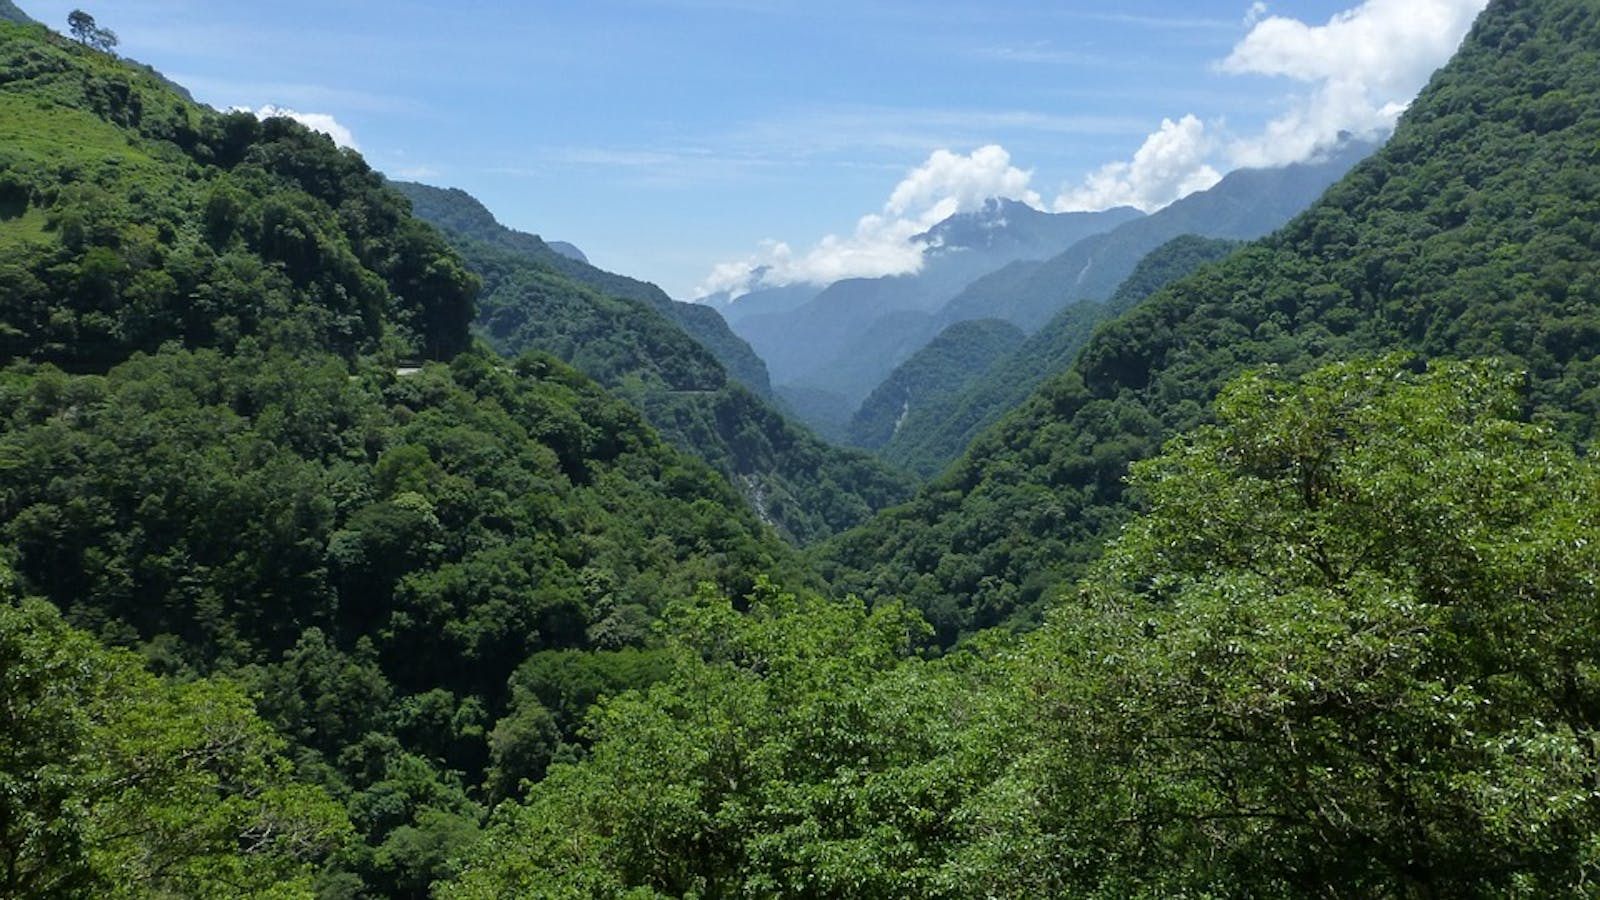 Taiwan Subtropical Evergreen Forests